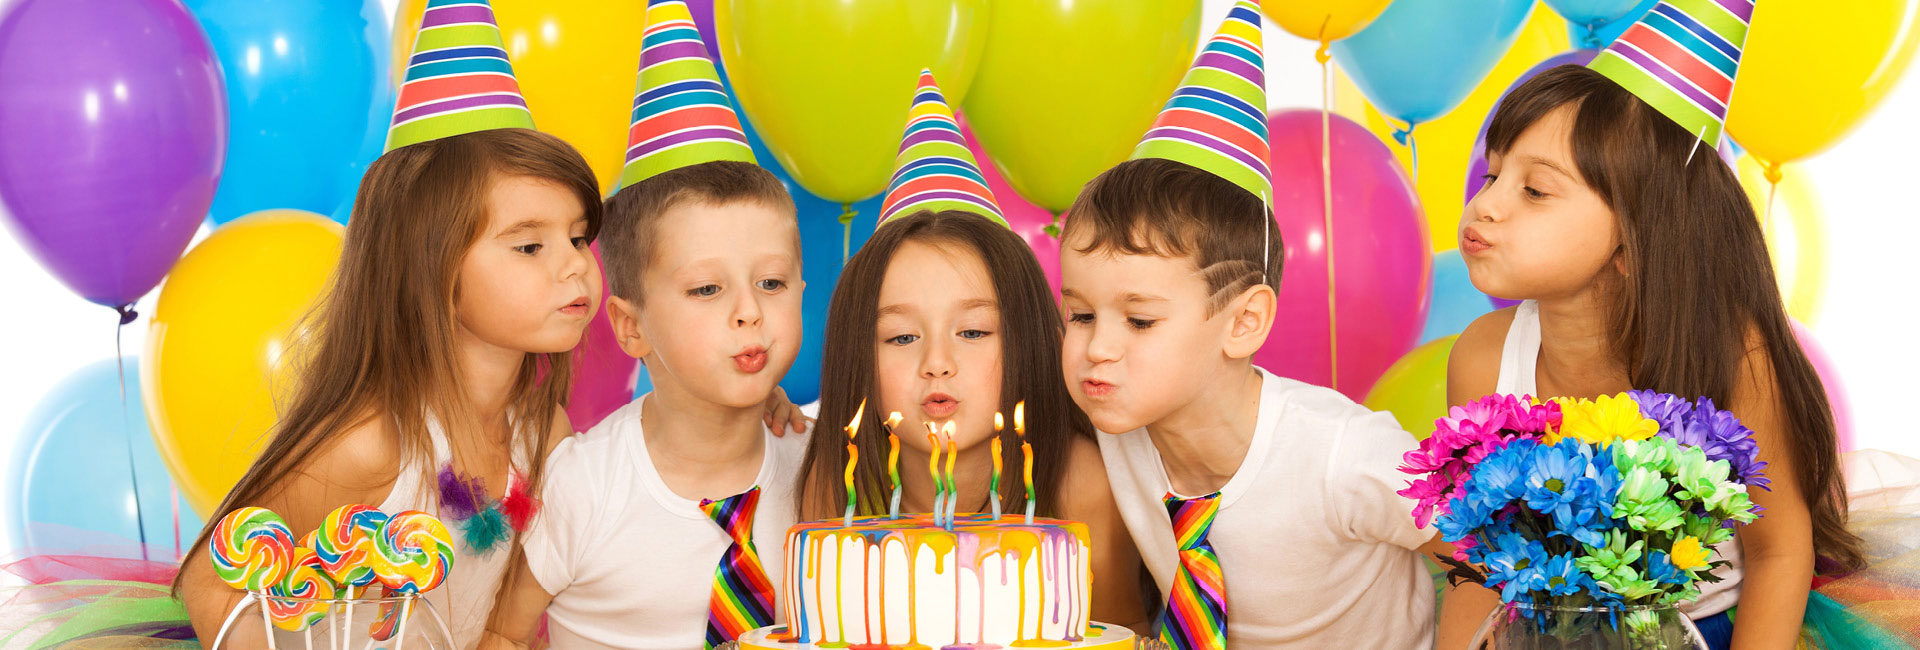 Kids Birthday Parties Aliso Viejo ClubSport Health And Fitness - Childrens birthday party planners